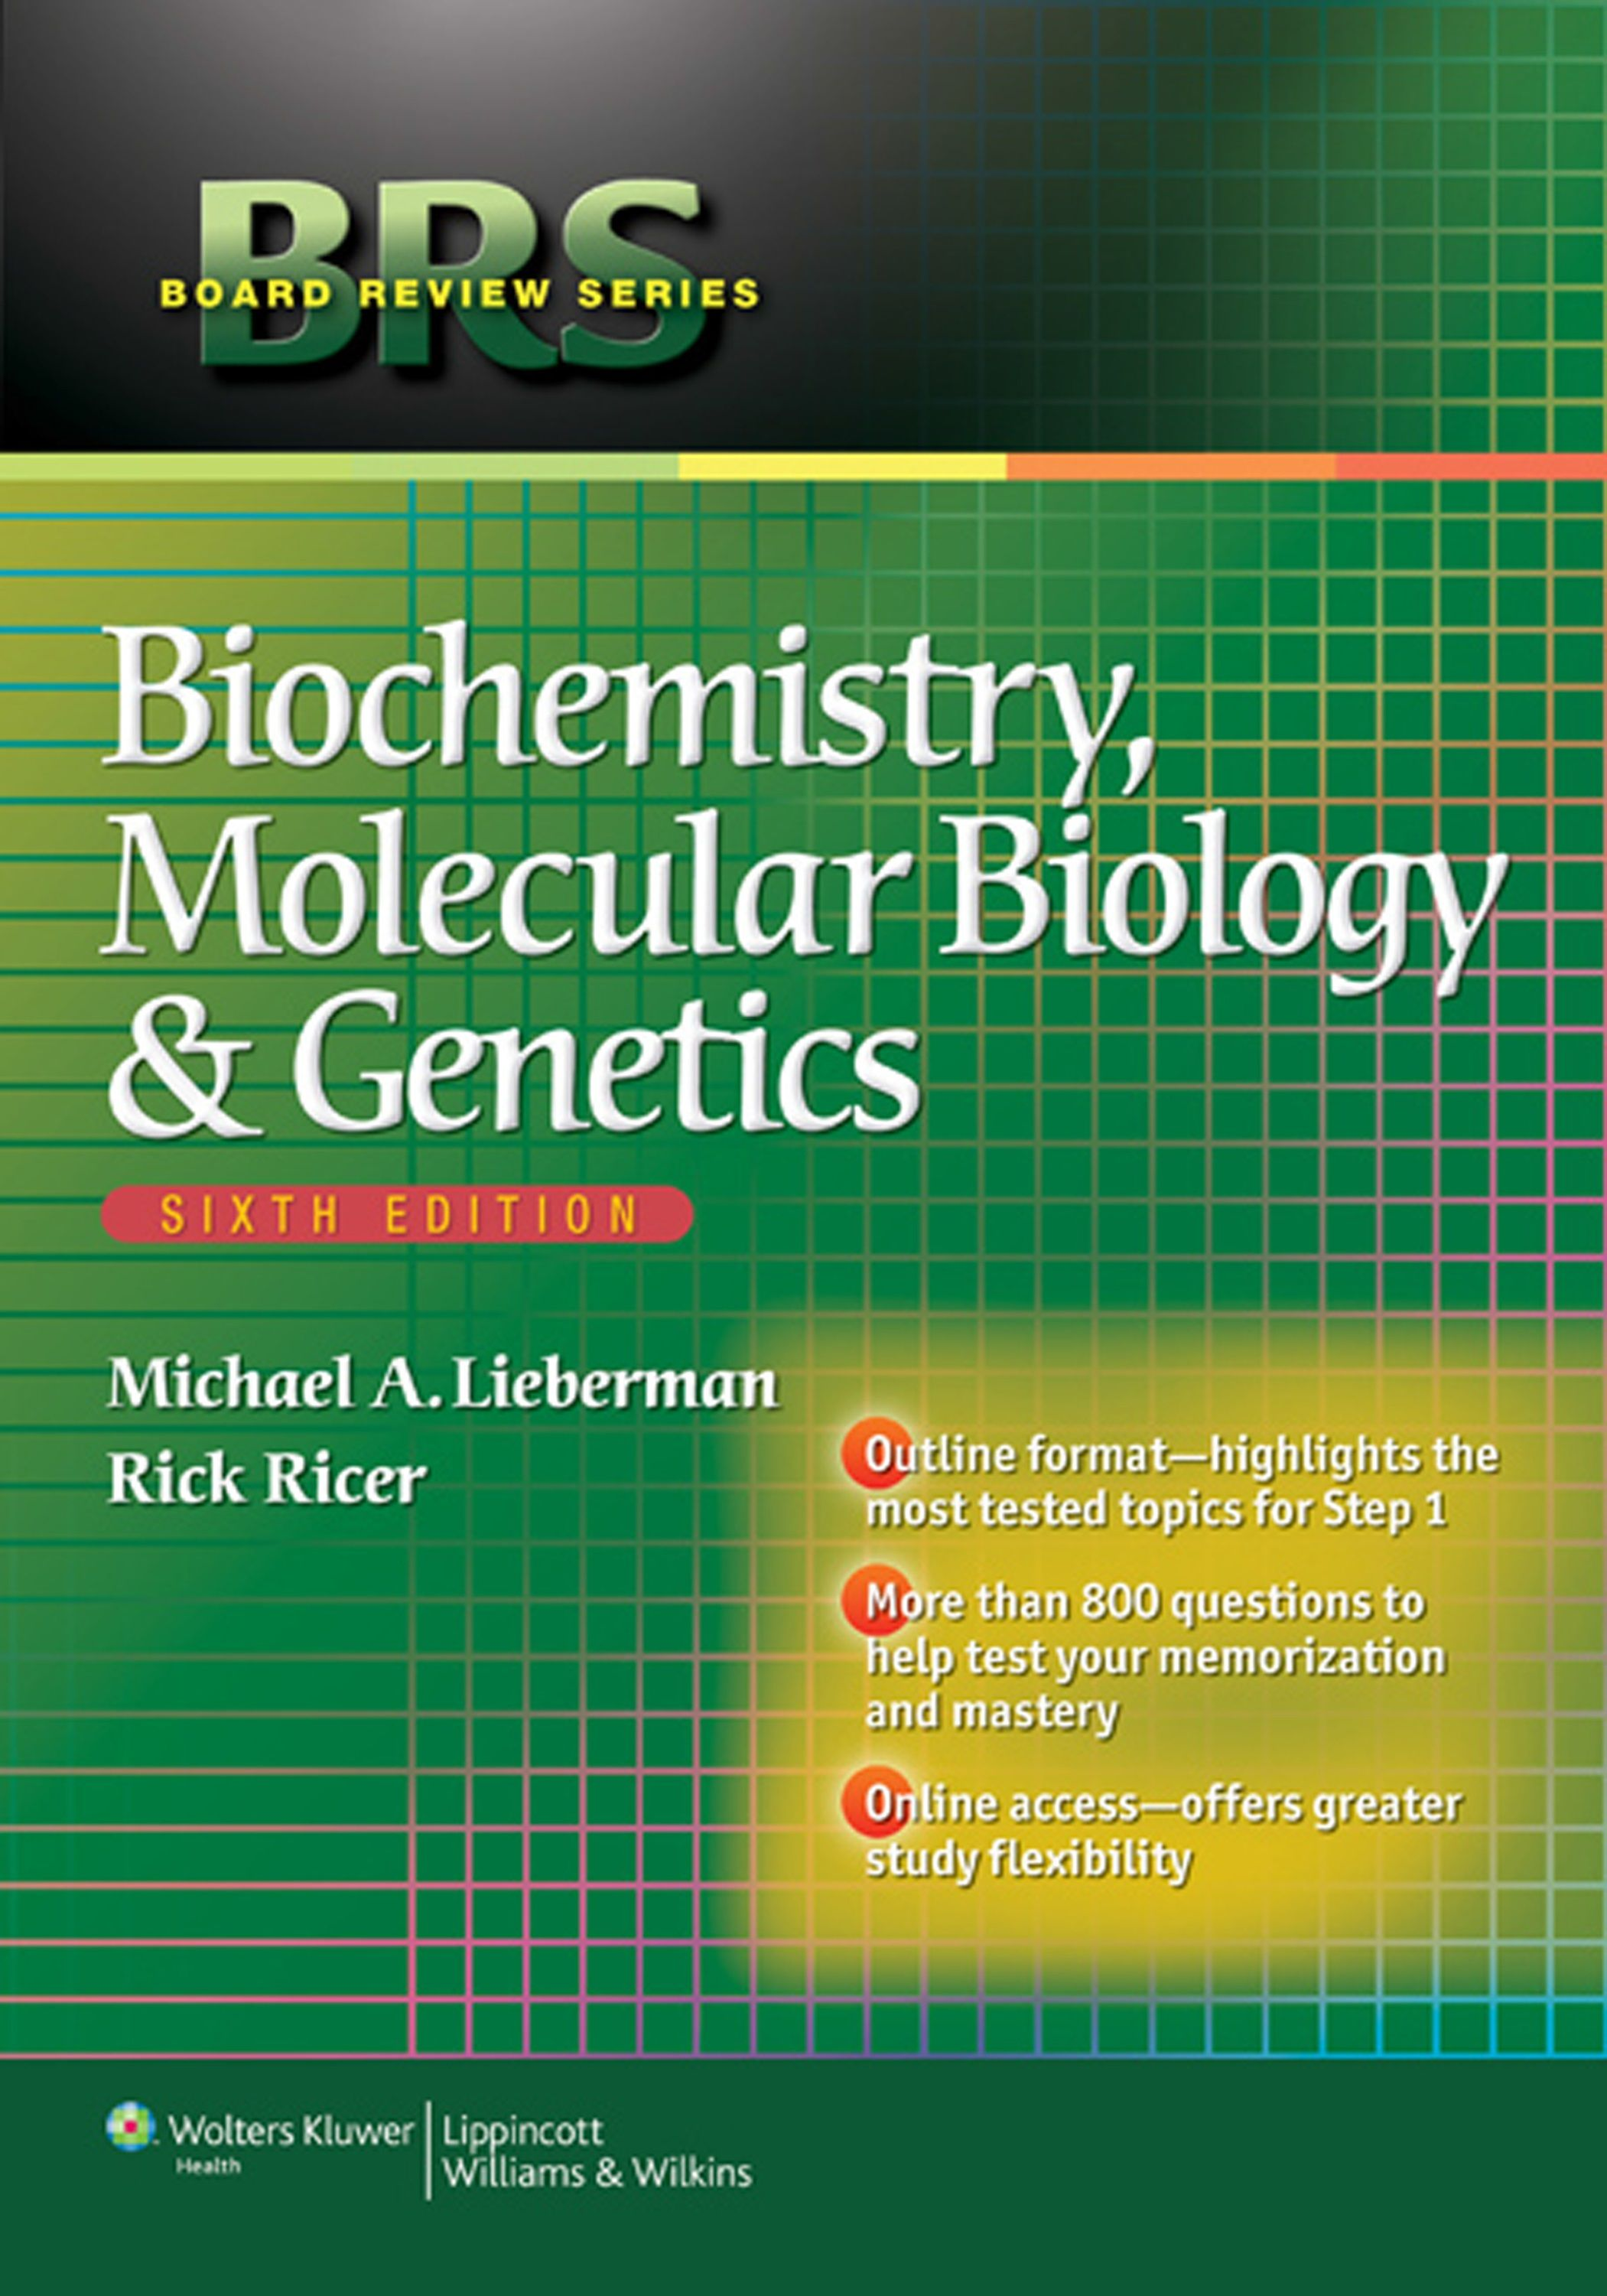 biochemistry the molecular basis of life 6th edition pdf